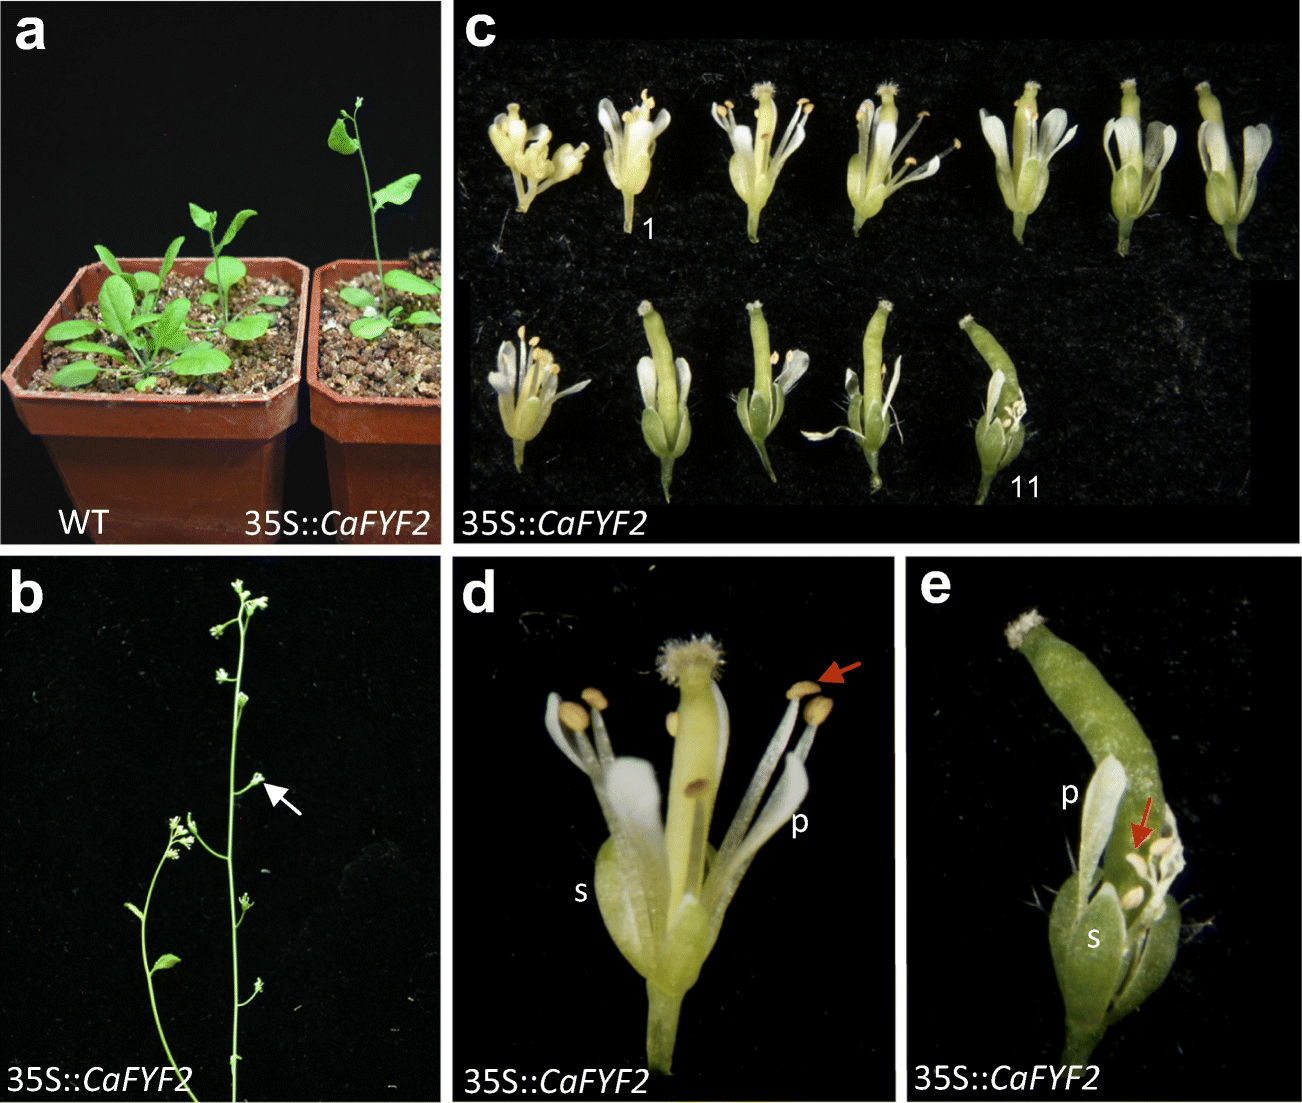 Ectopic Expression of Two FOREVER YOUNG FLOWER Orthologues from